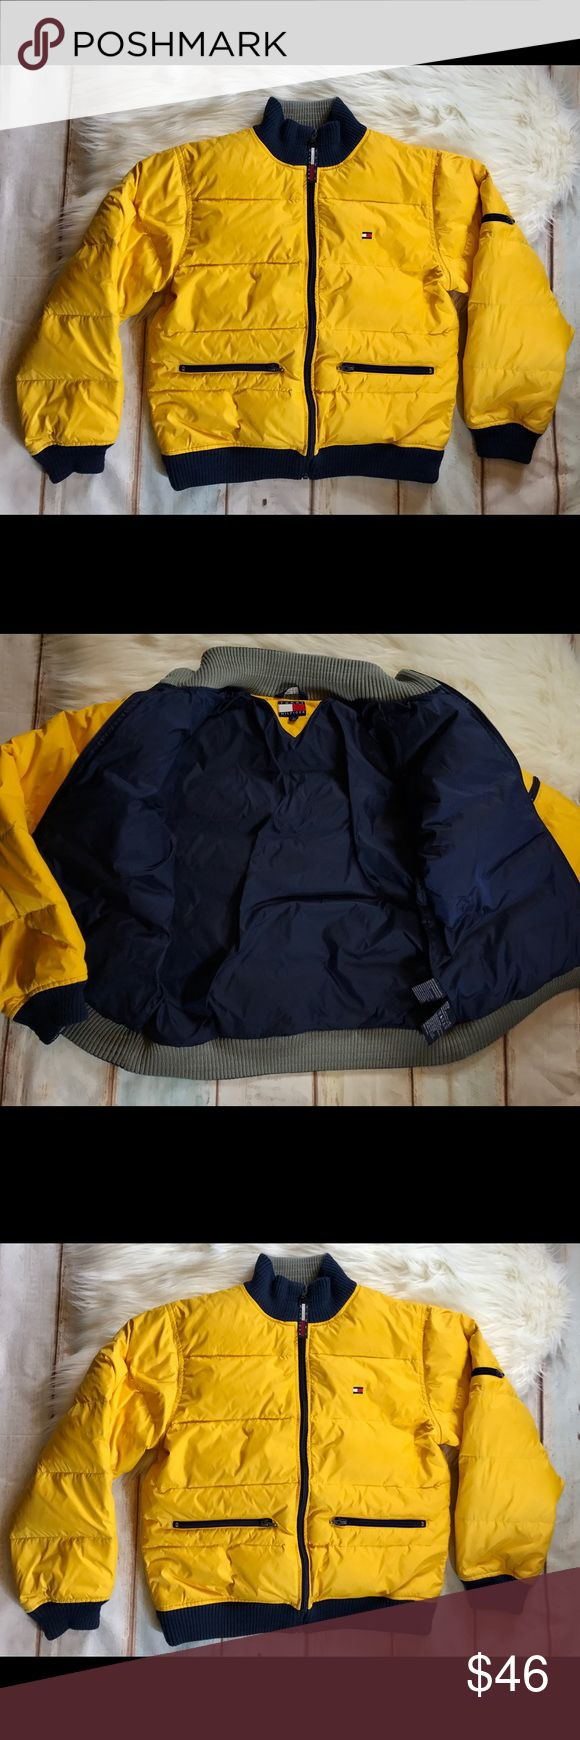 """Tommy Hilfiger Yellow & Navy Goose Down Jacket Tommy Hilfiger Yellow & Navy Blue Goose Down Jacket.                                                                              **2 Front Zippered Pockets.                                    **Small Left Arm Zippered Pocket.                                ** Size Large. Chest: 42"""" Length: 23"""" Sleeve Length: 23"""" Shoulder To Shoulder: 34"""".                         ** This Jacket Is Non Gender Specific. Men Or Women Welcome 🙂 Tommy Hilfiger…"""